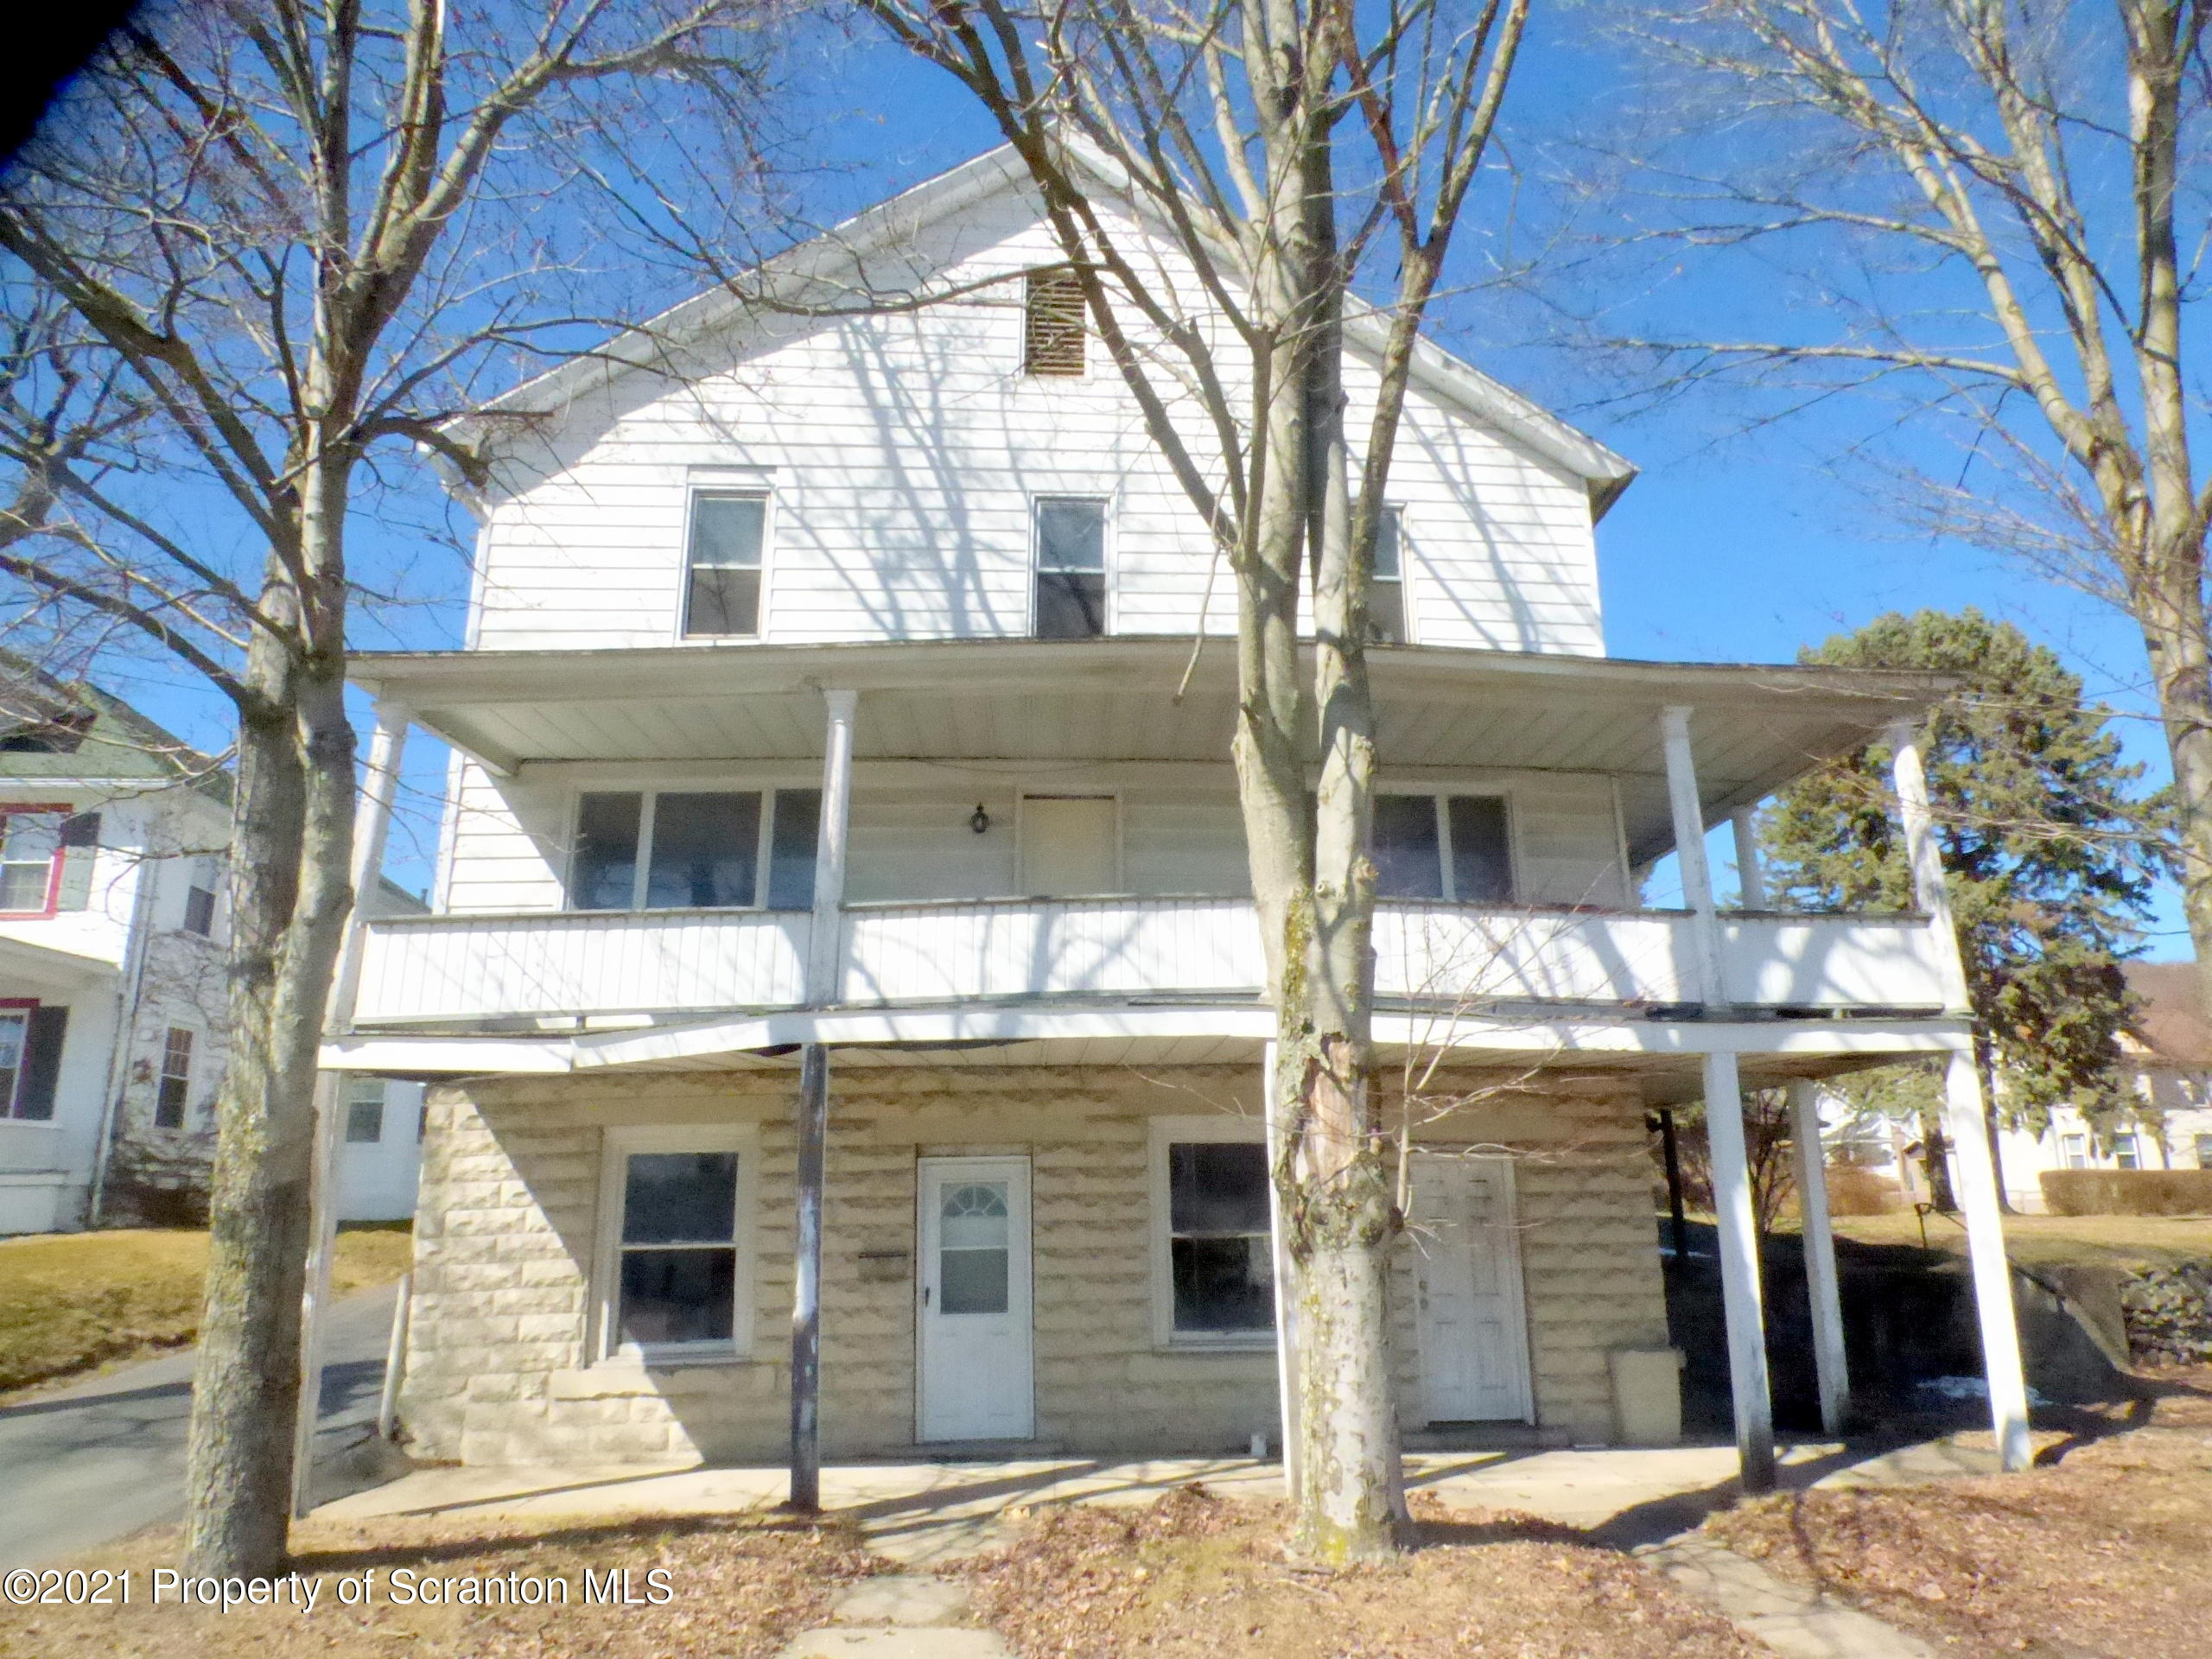 213 Main St, Mayfield, Pennsylvania 18433, 5 Bedrooms Bedrooms, 8 Rooms Rooms,2 BathroomsBathrooms,Single Family,For Sale,Main,21-779